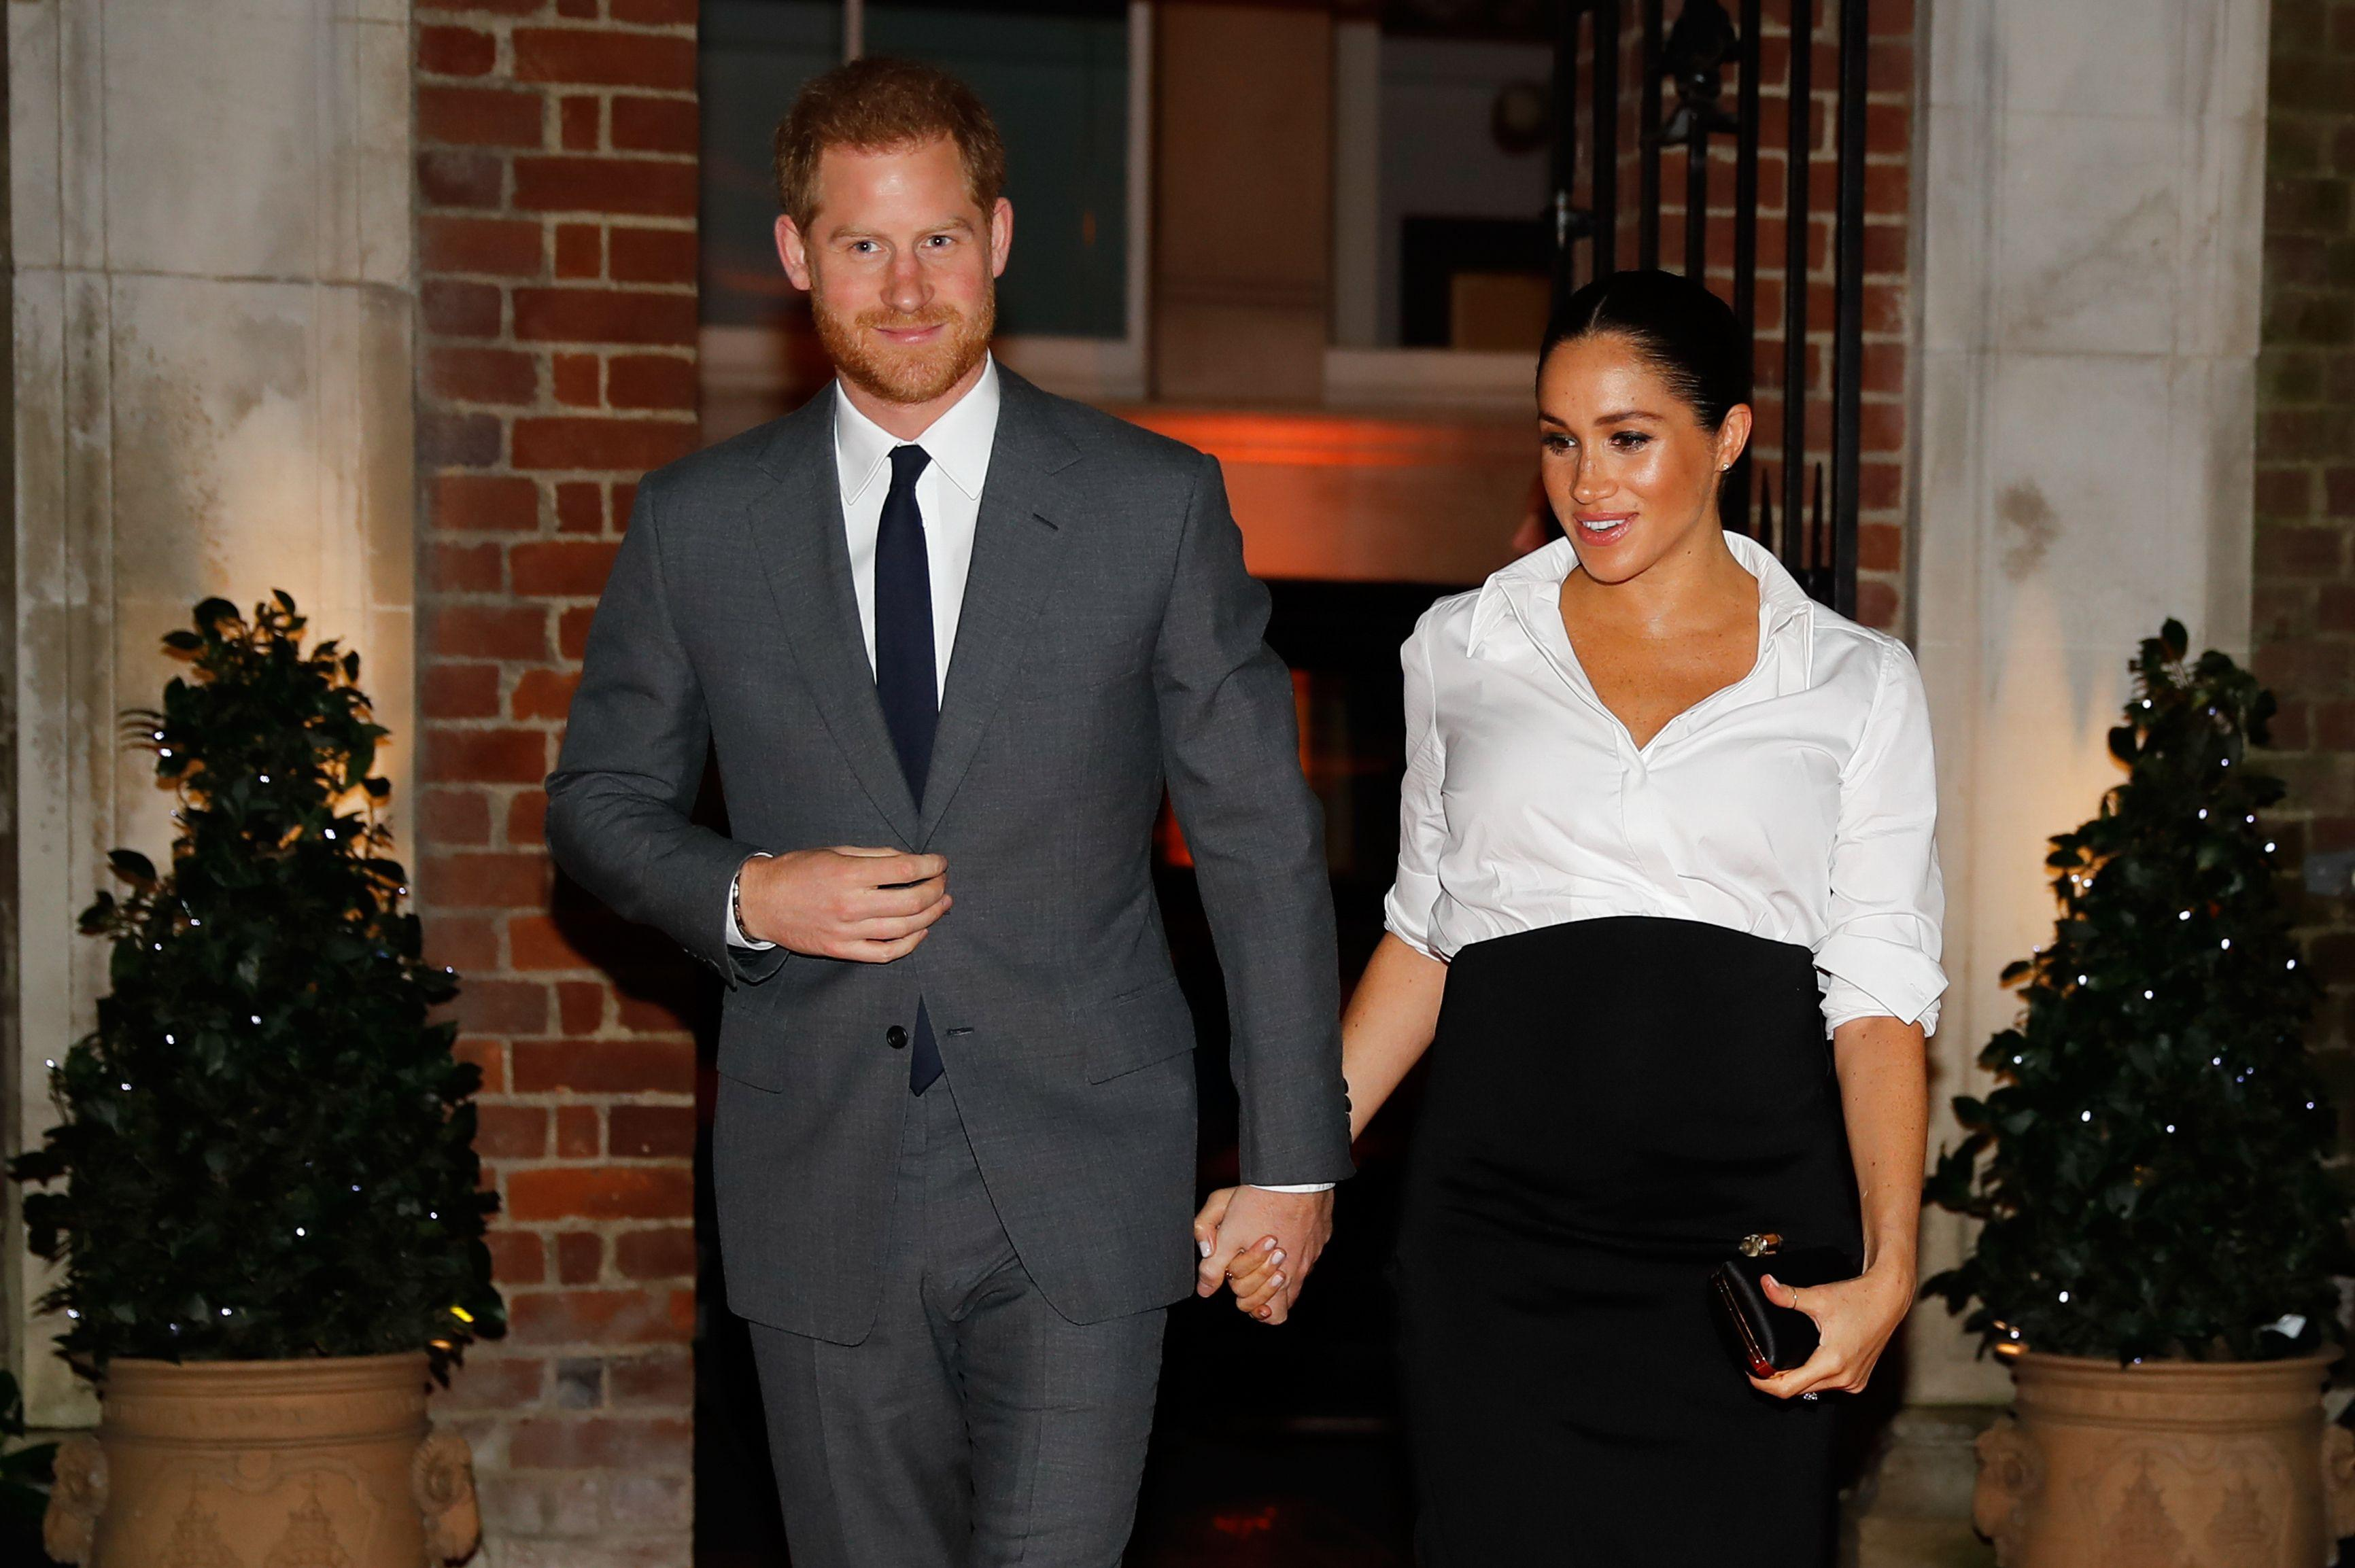 Meghan and Harry moving